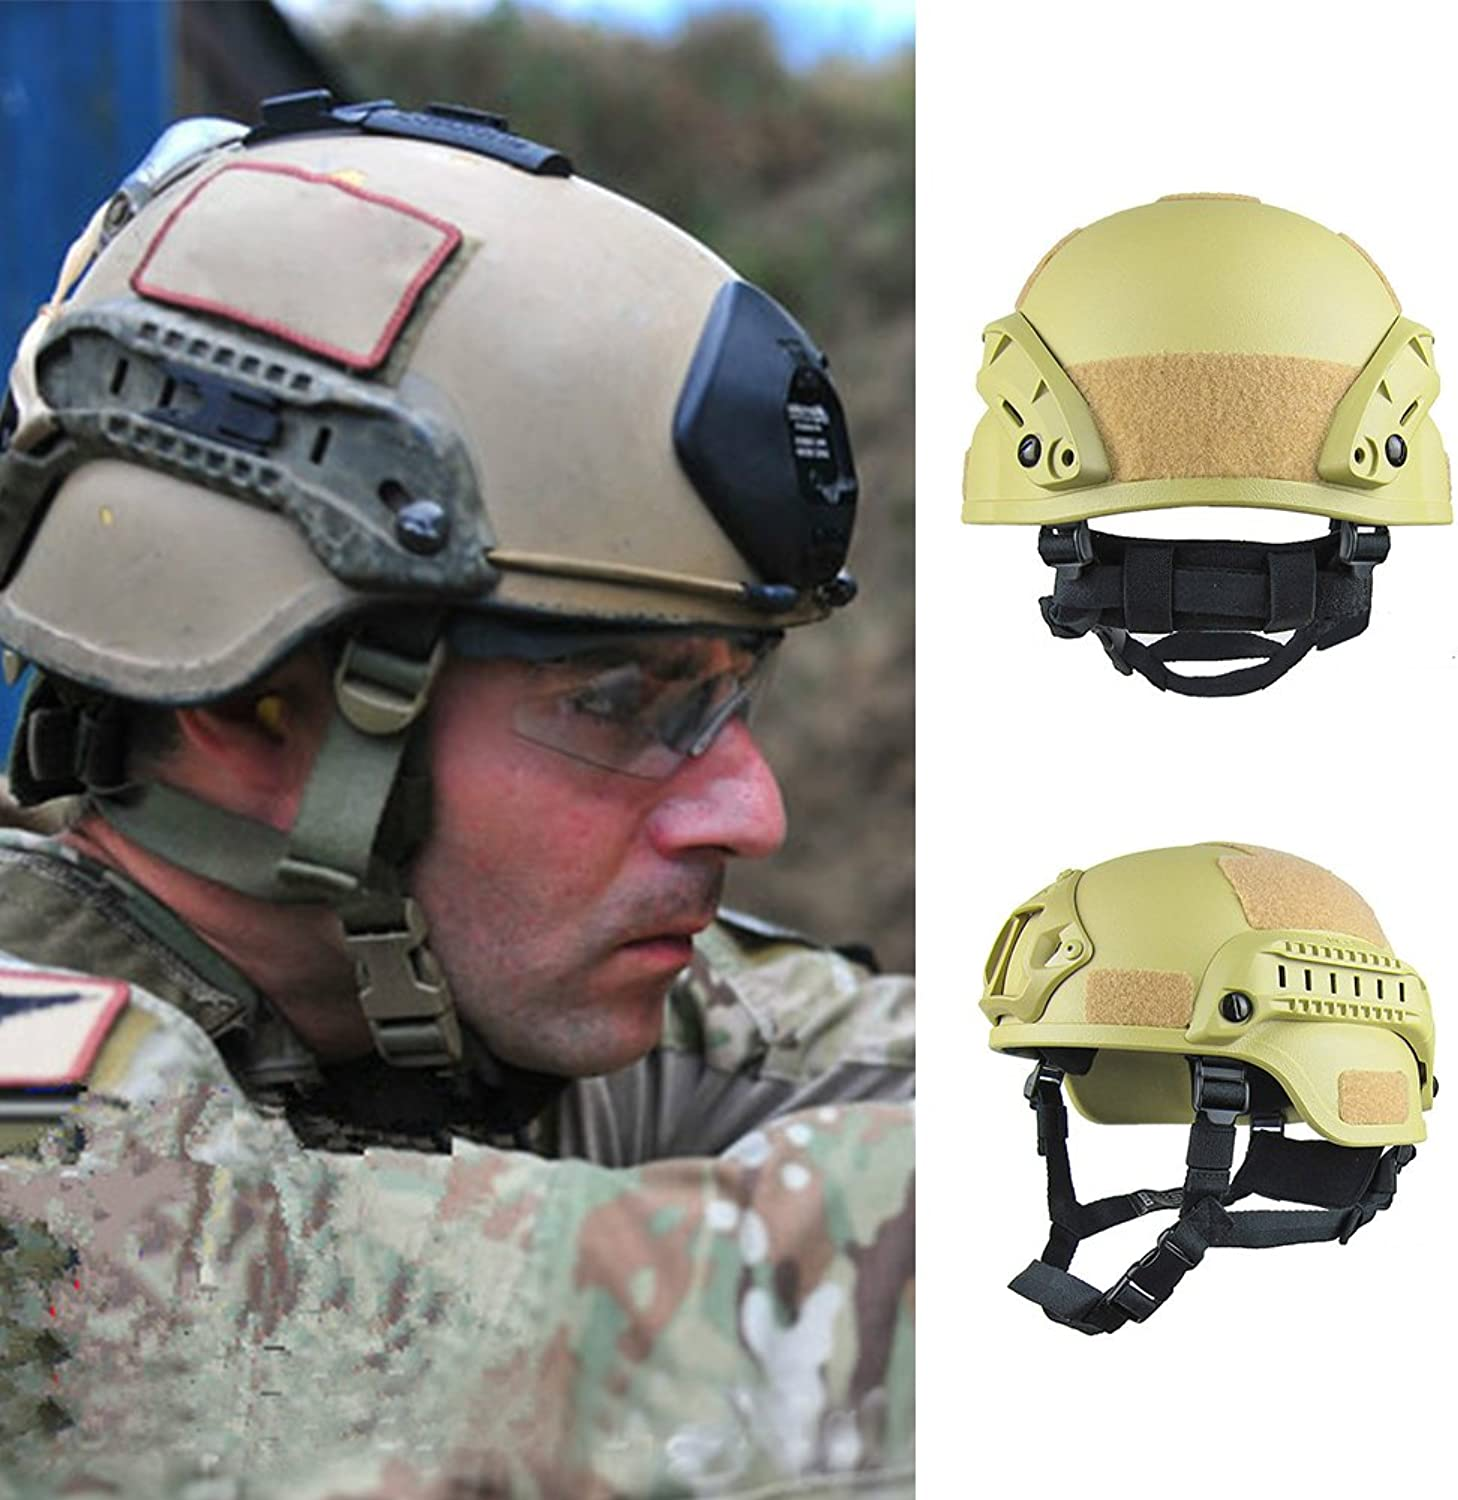 DAVEVY CS Games Helmet Cycling Safety Predective Helmet Unisex Lightweight Tactical for Outdoor Mountain Bike Bicycle War Field Operations